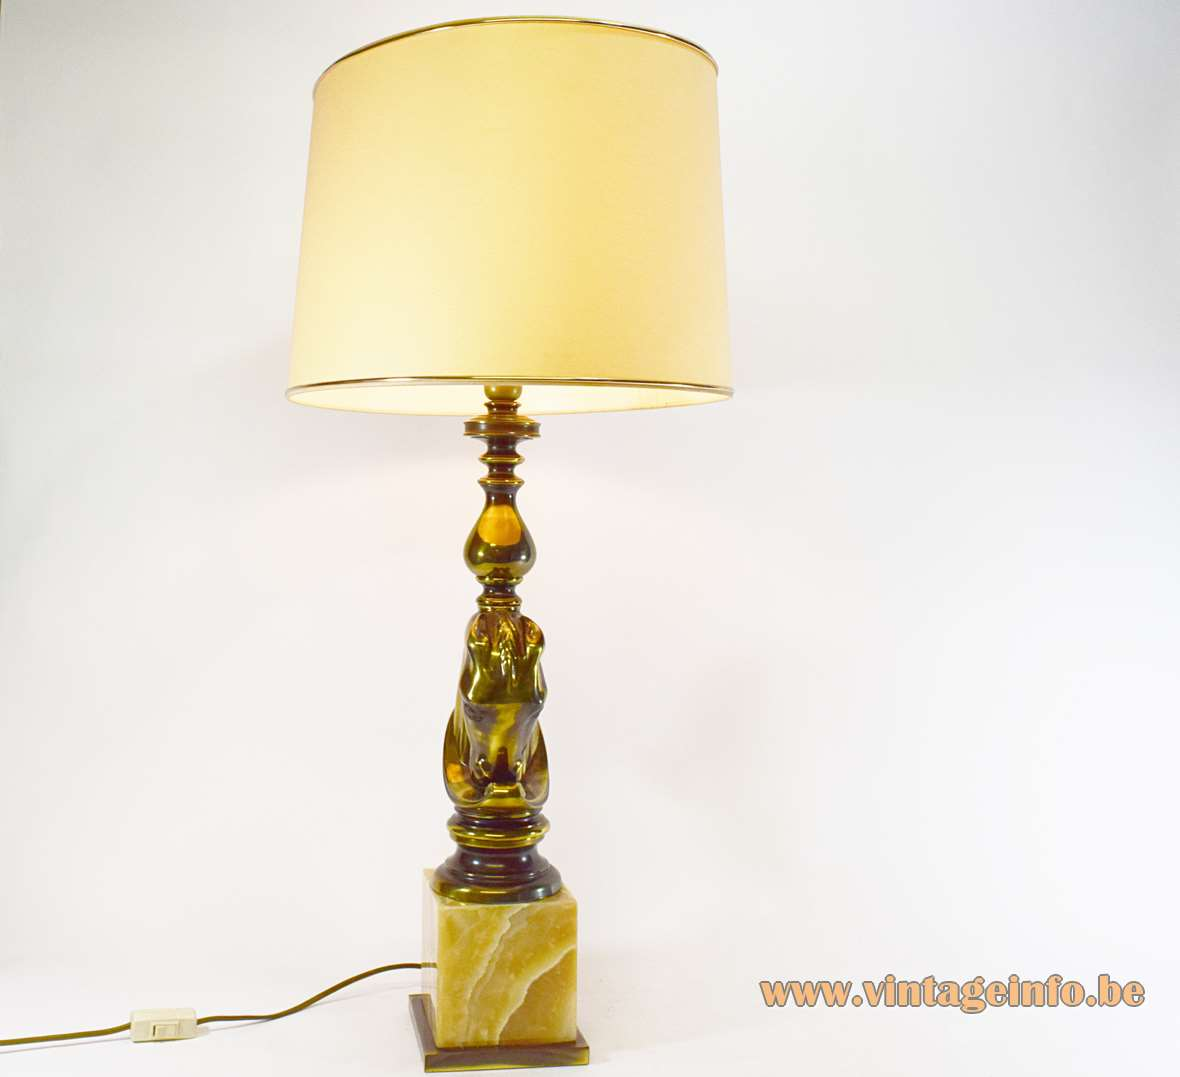 Horsehead Table Lamp Vintage Info All About Vintage